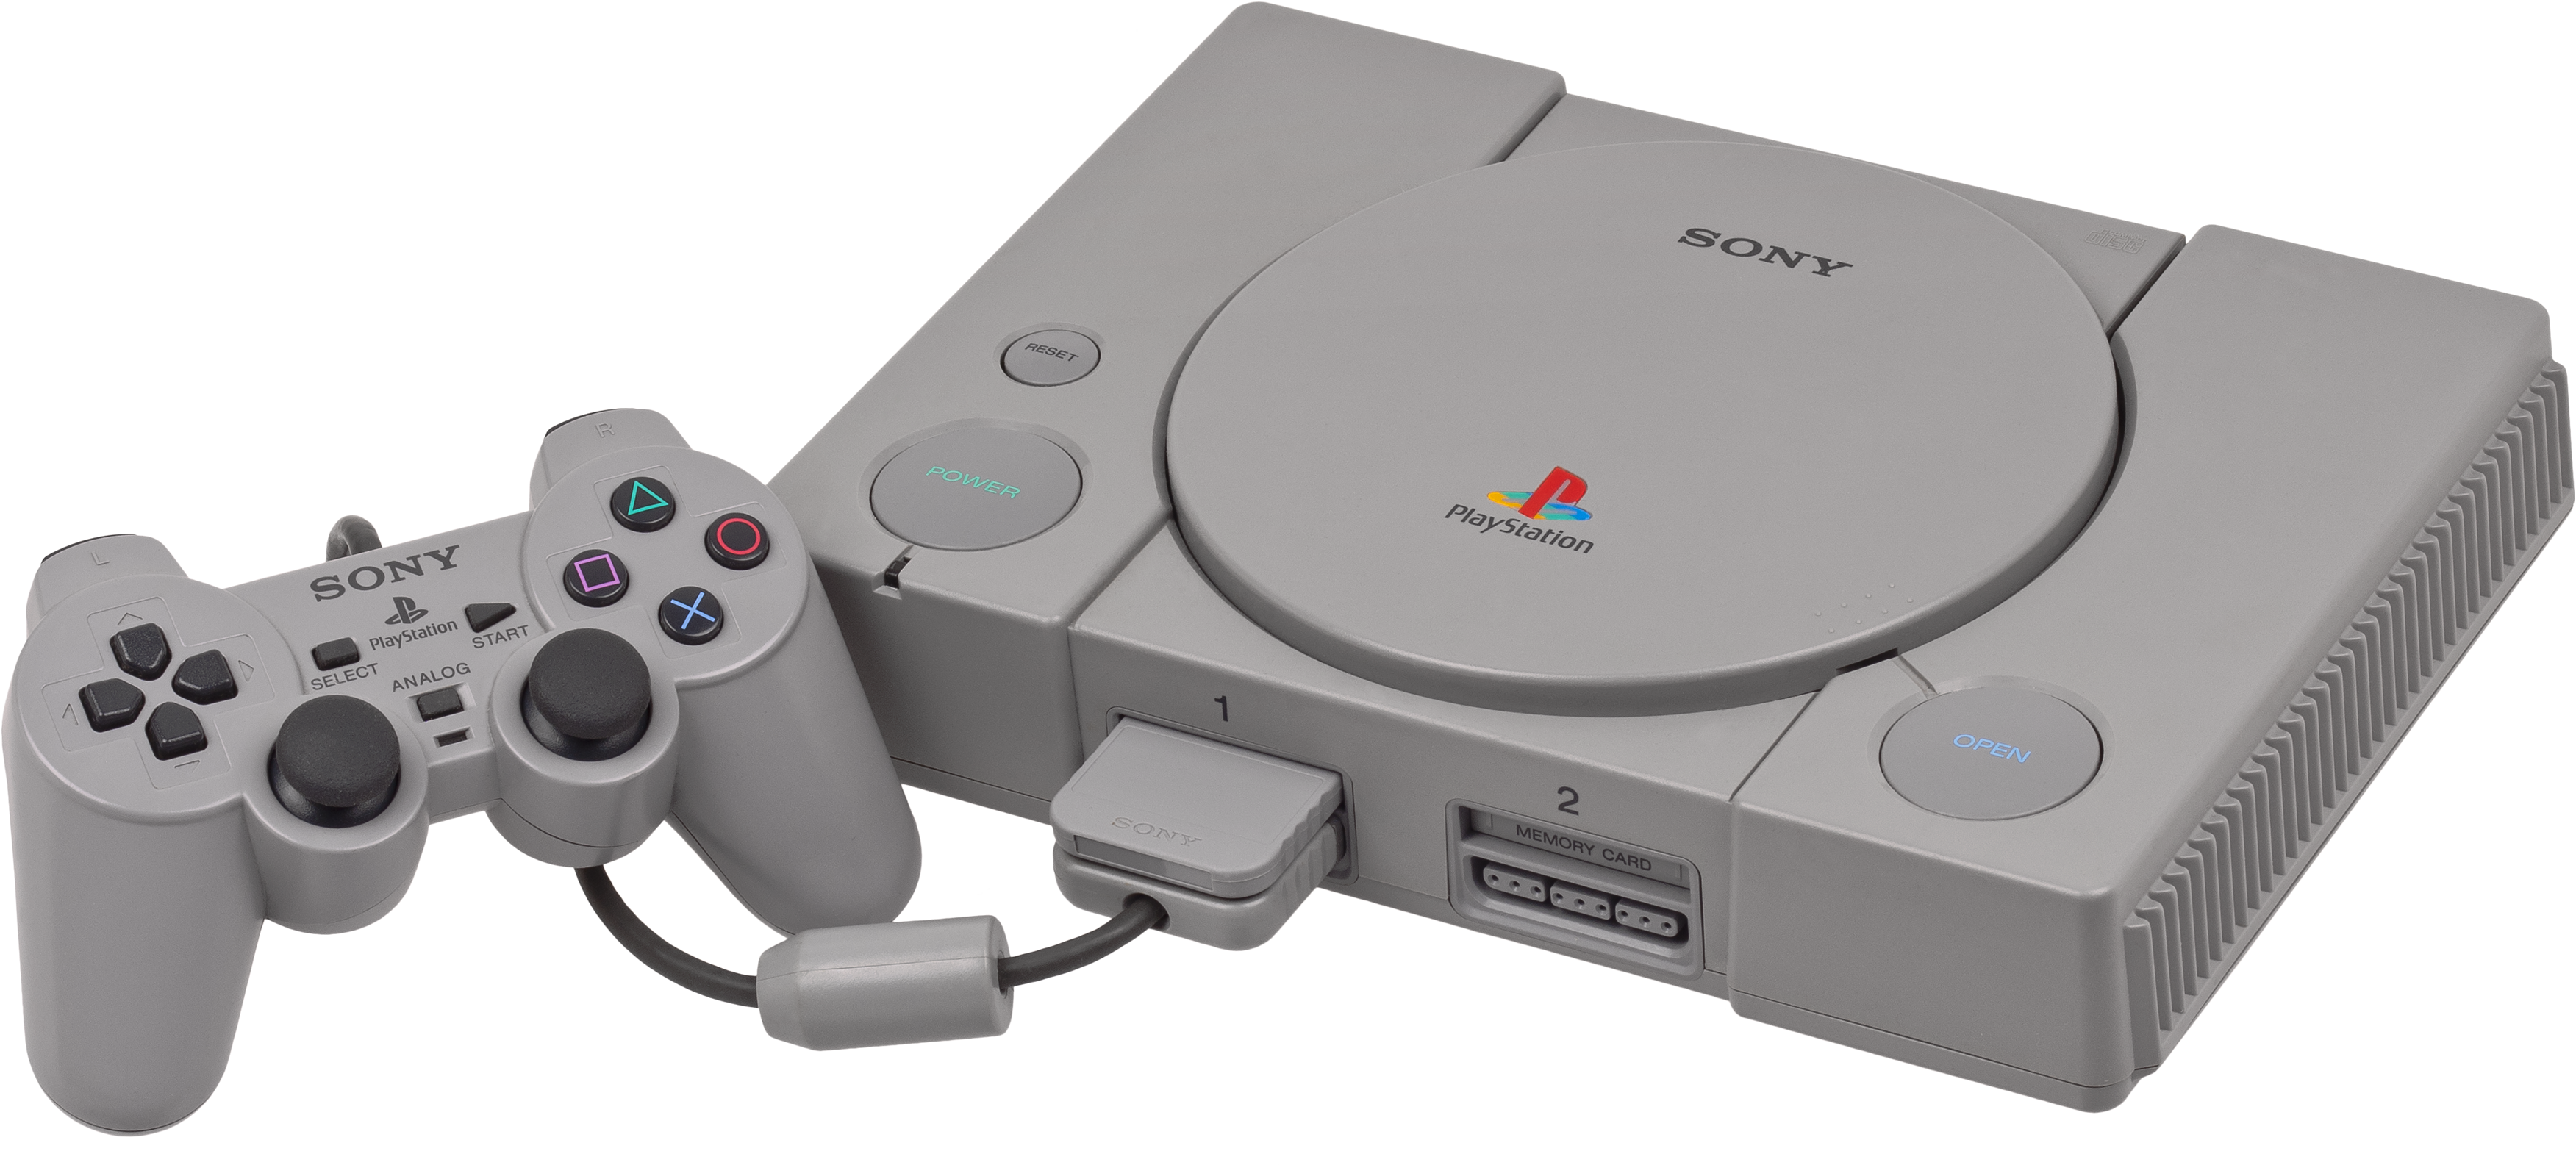 Play station png. Hq playstation transparent images